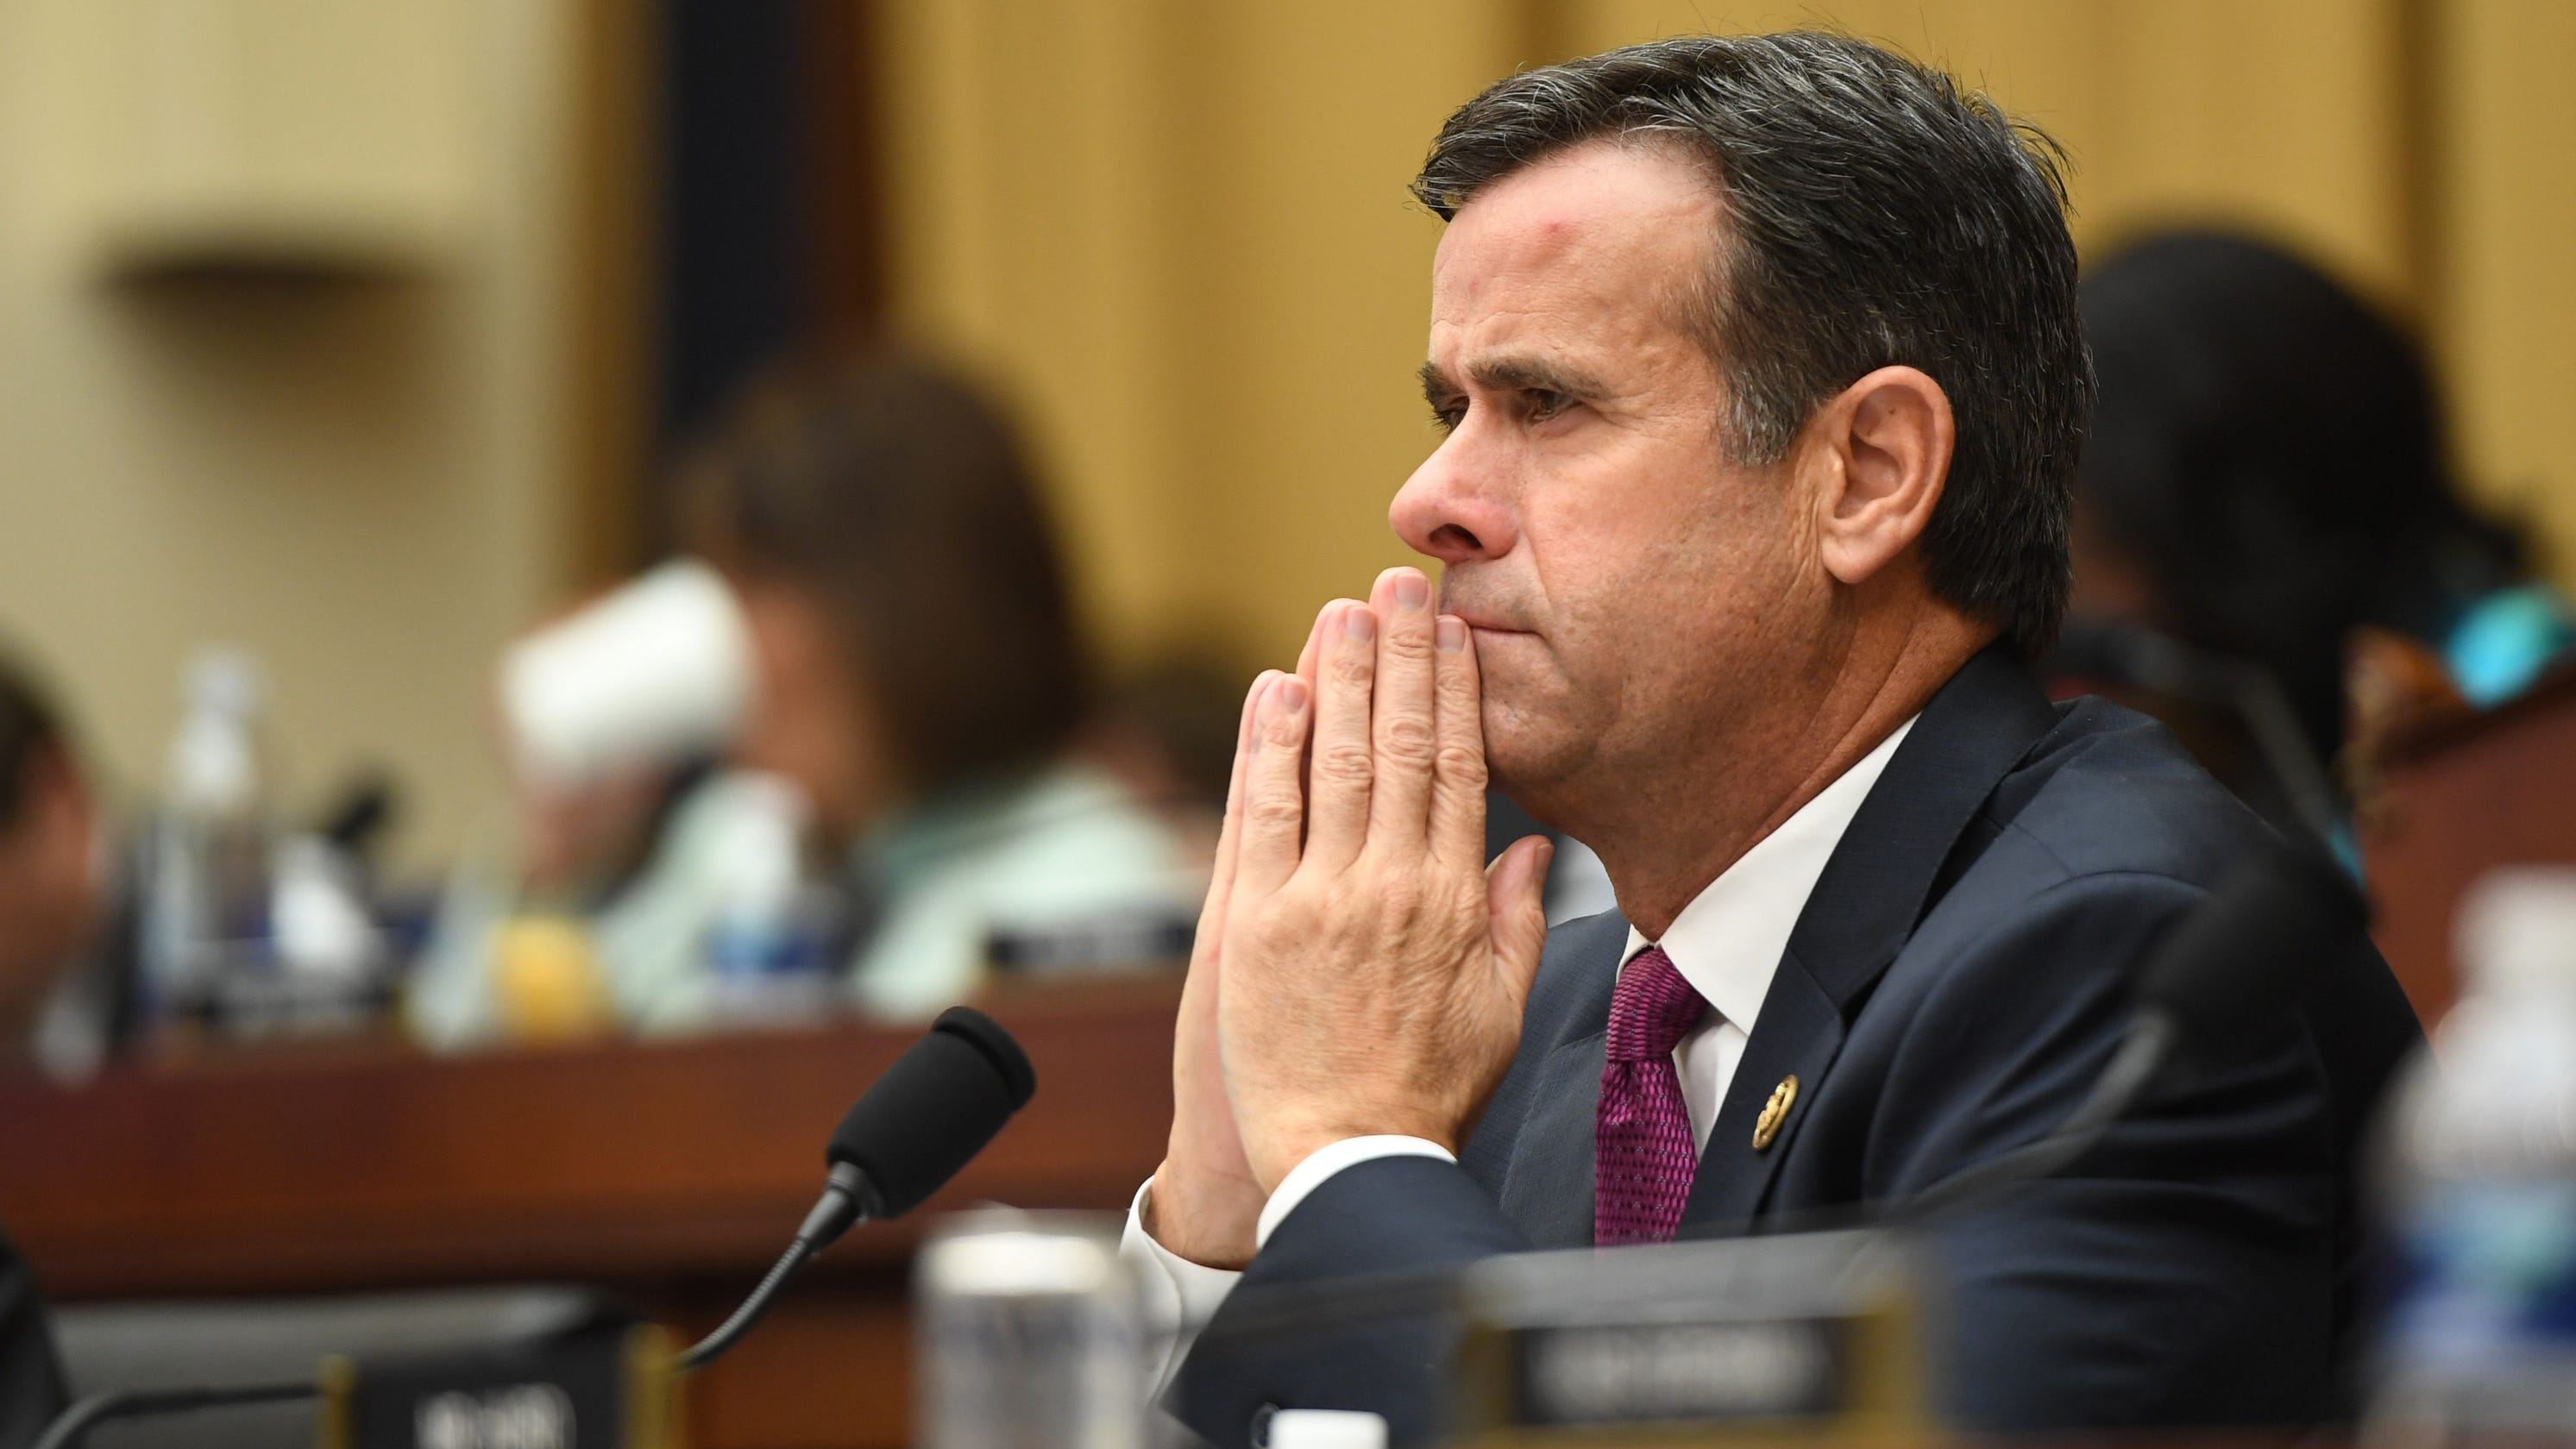 John Ratcliffe: Who Is The Man Trump Named To Replace Dan